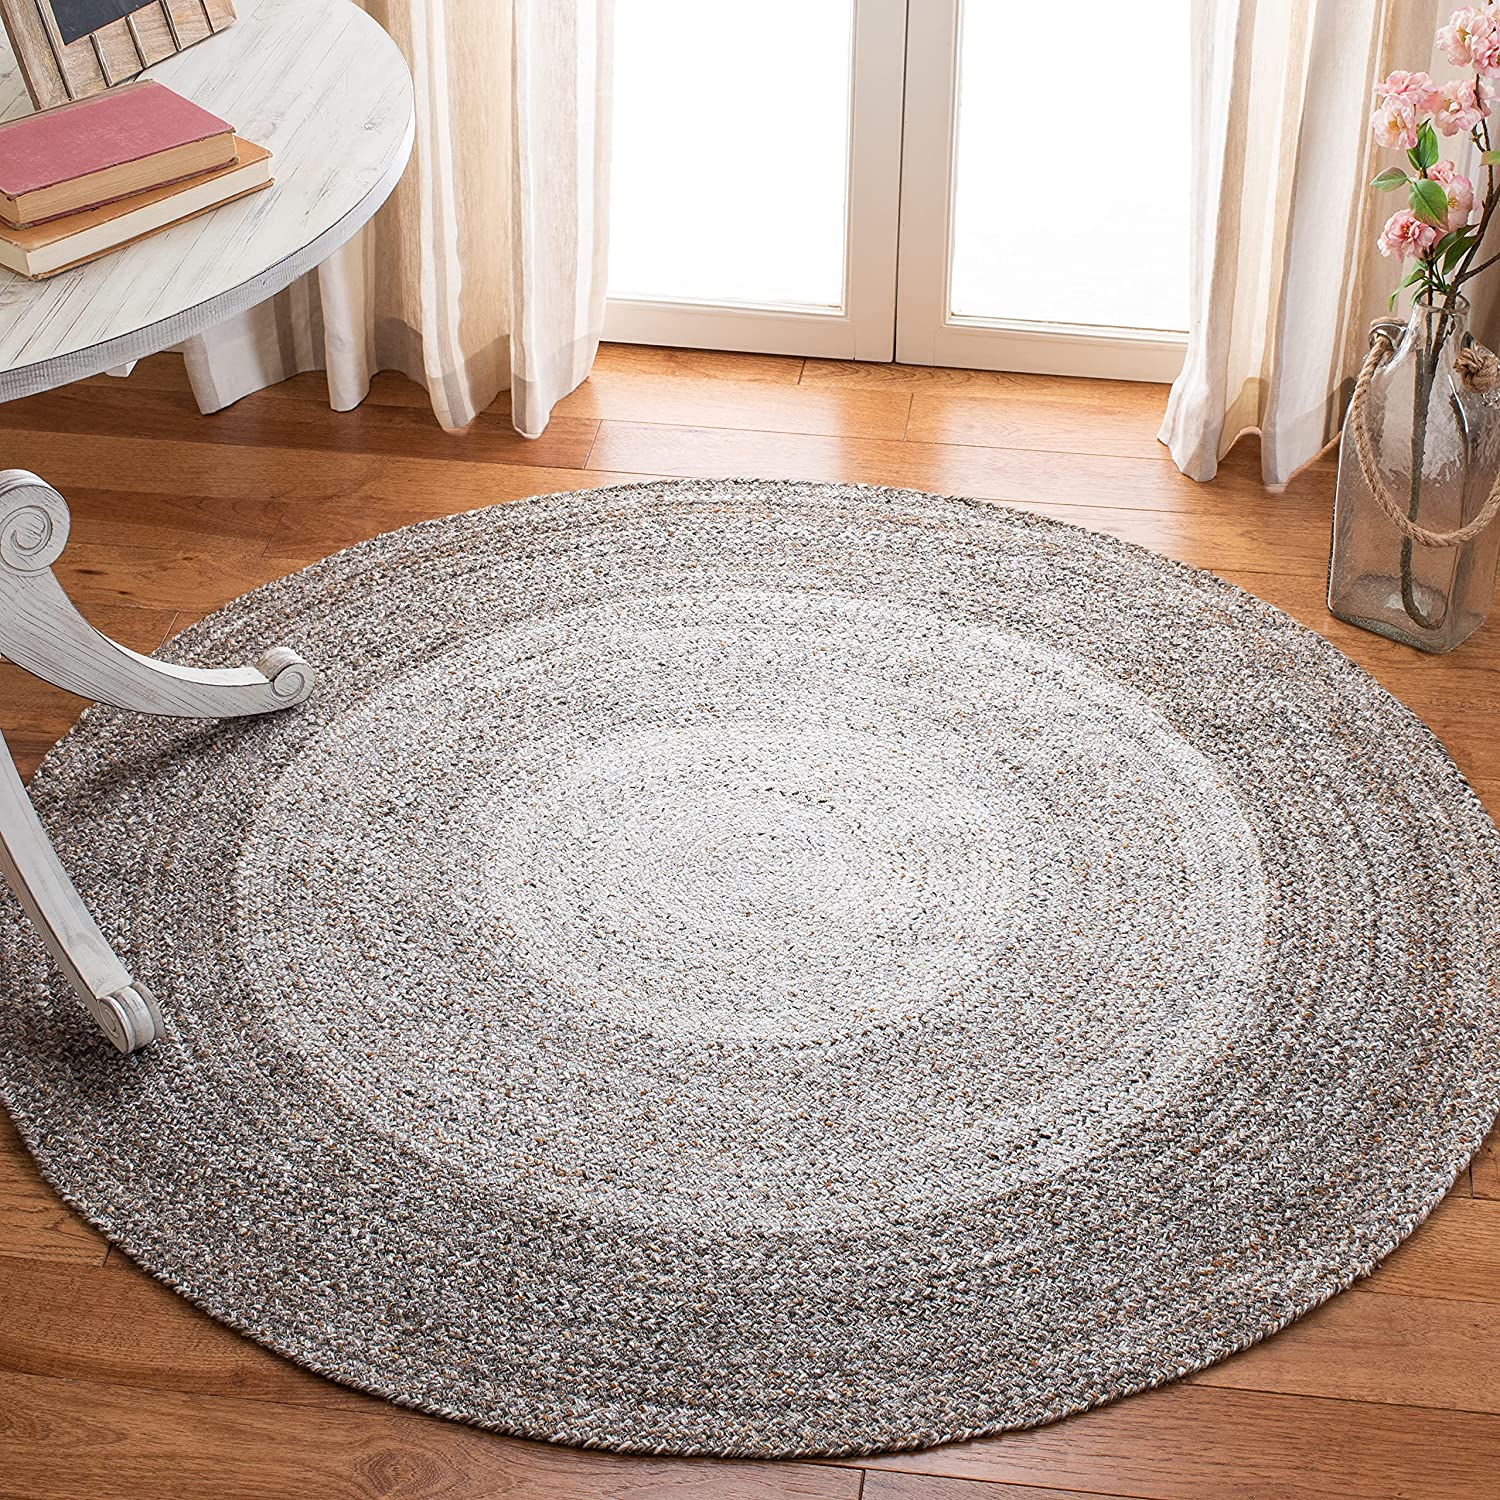 Safavieh Braided Manufacturer regenerated product Collection BRD802T Rev Cottage Handmade Country 5 ☆ very popular